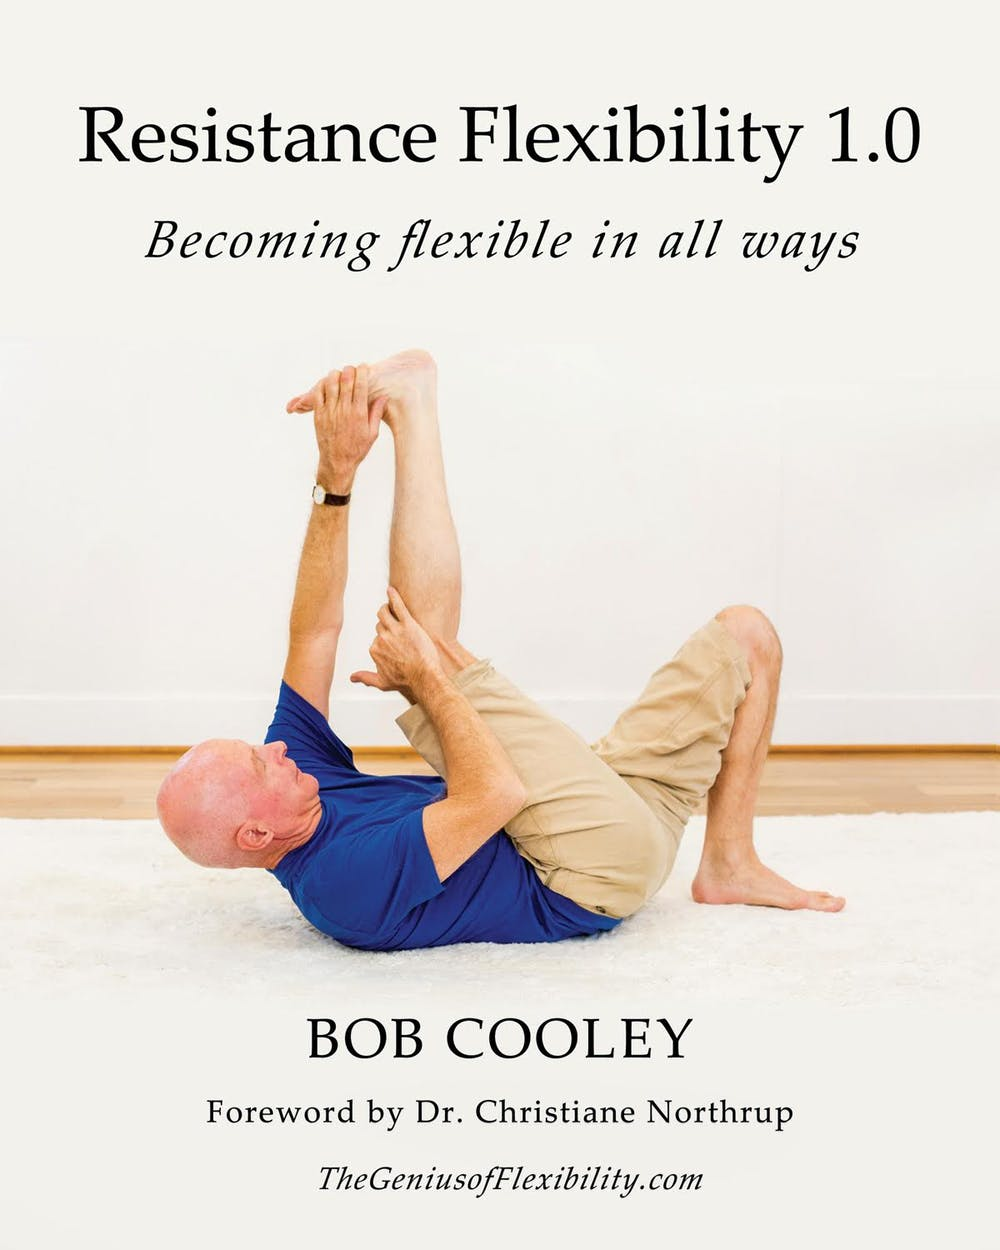 Resistance Flexibility 1.0 by Bob Cooley